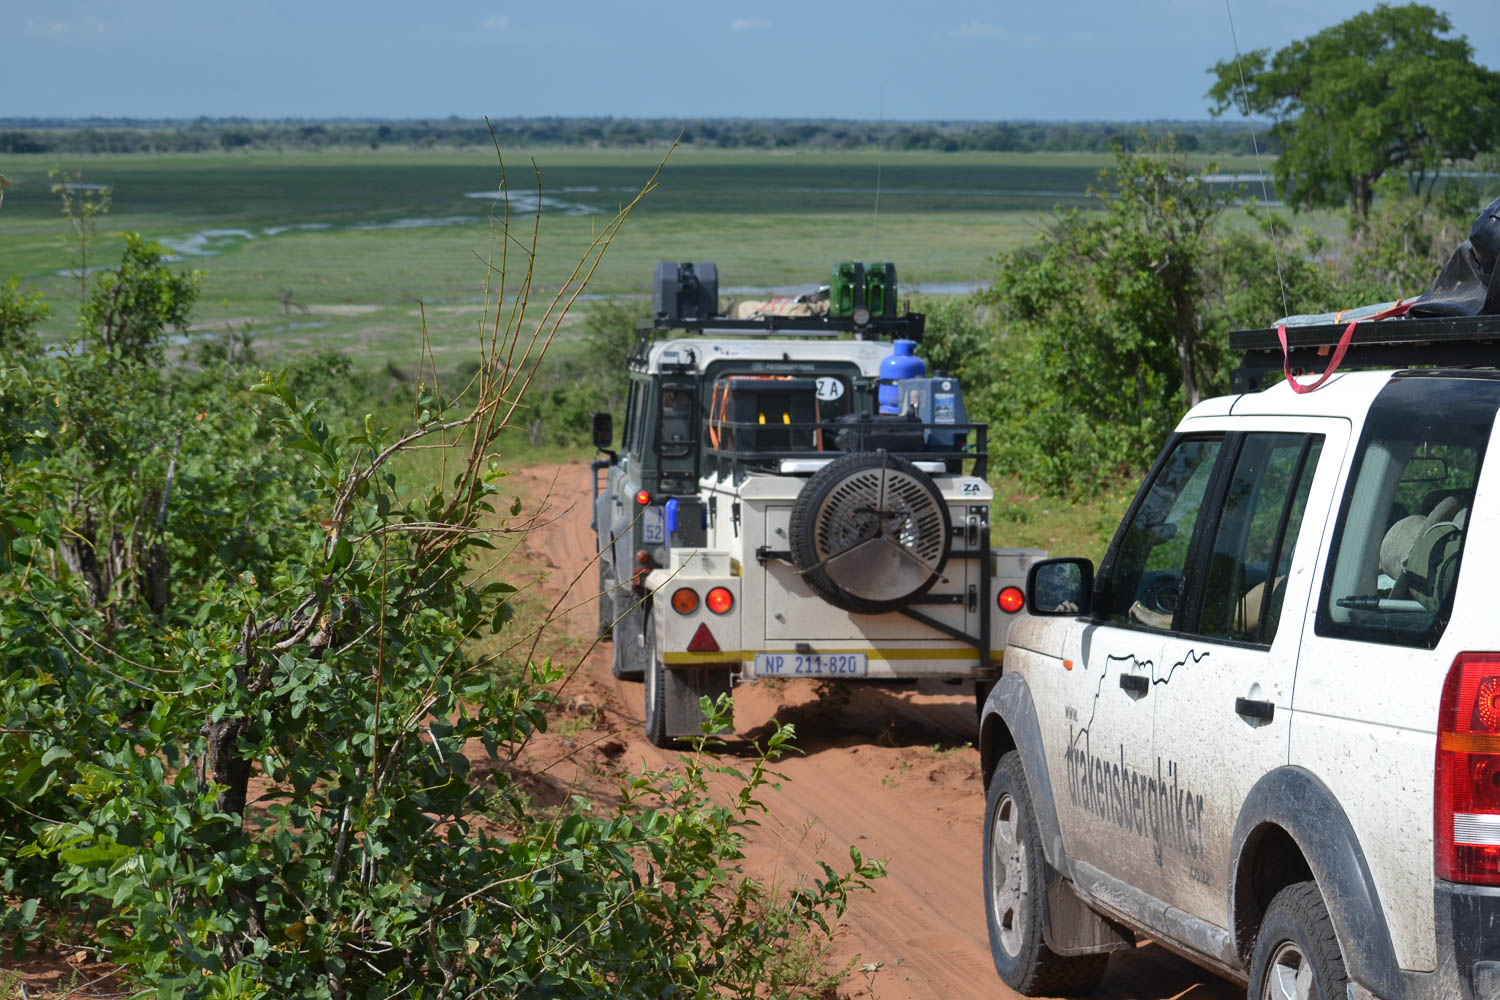 On the road, touring Southern Africa with South Africa Overland 4x4 Tours